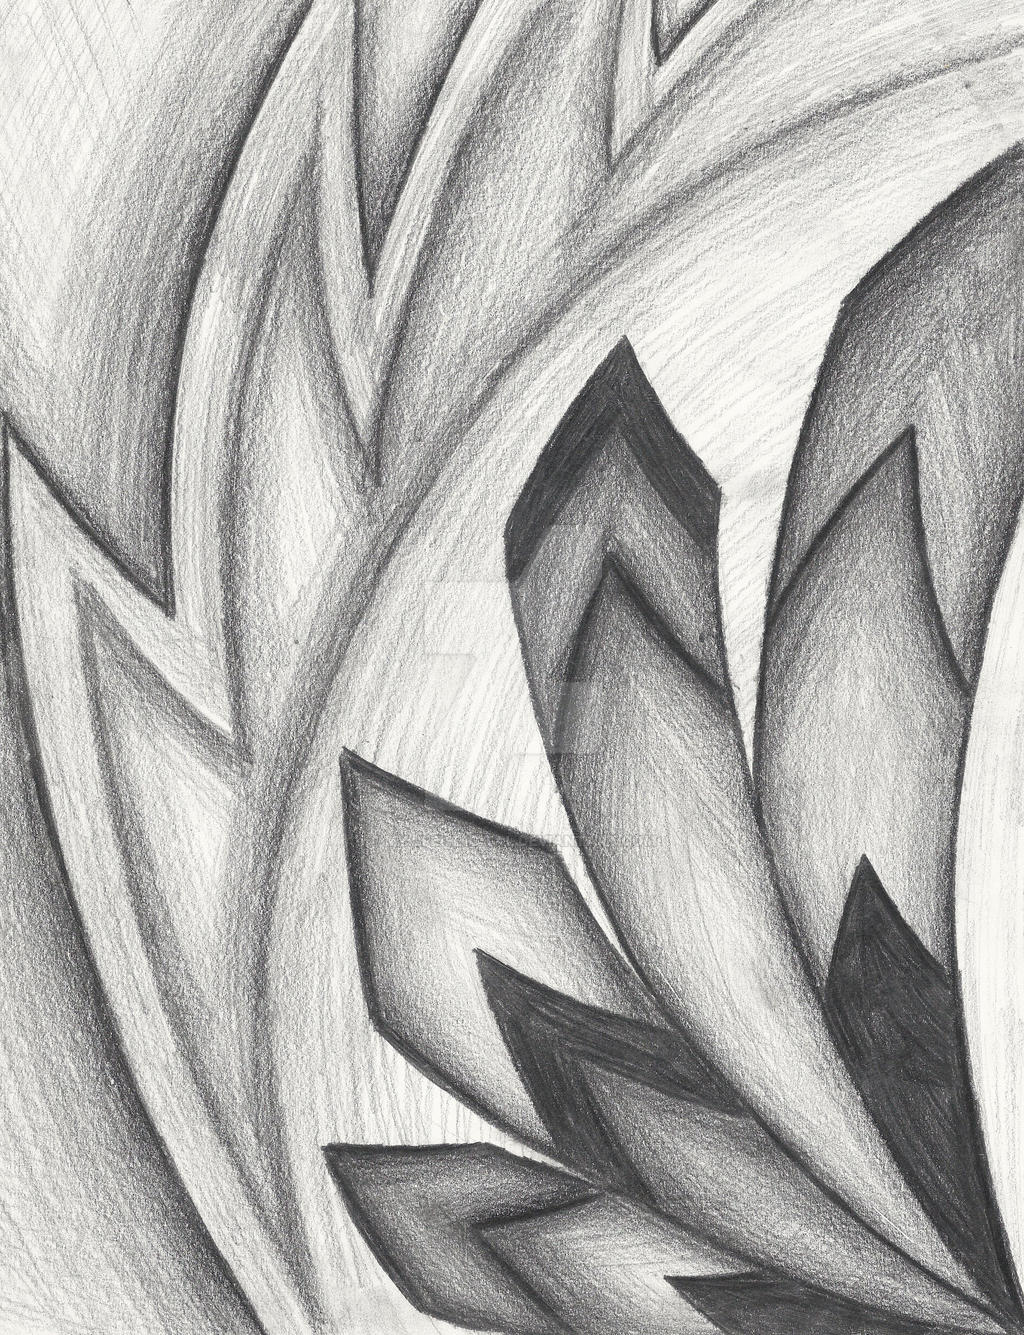 Abstract drawing 15 by mylifeisdigital abstract drawing 15 by mylifeisdigital